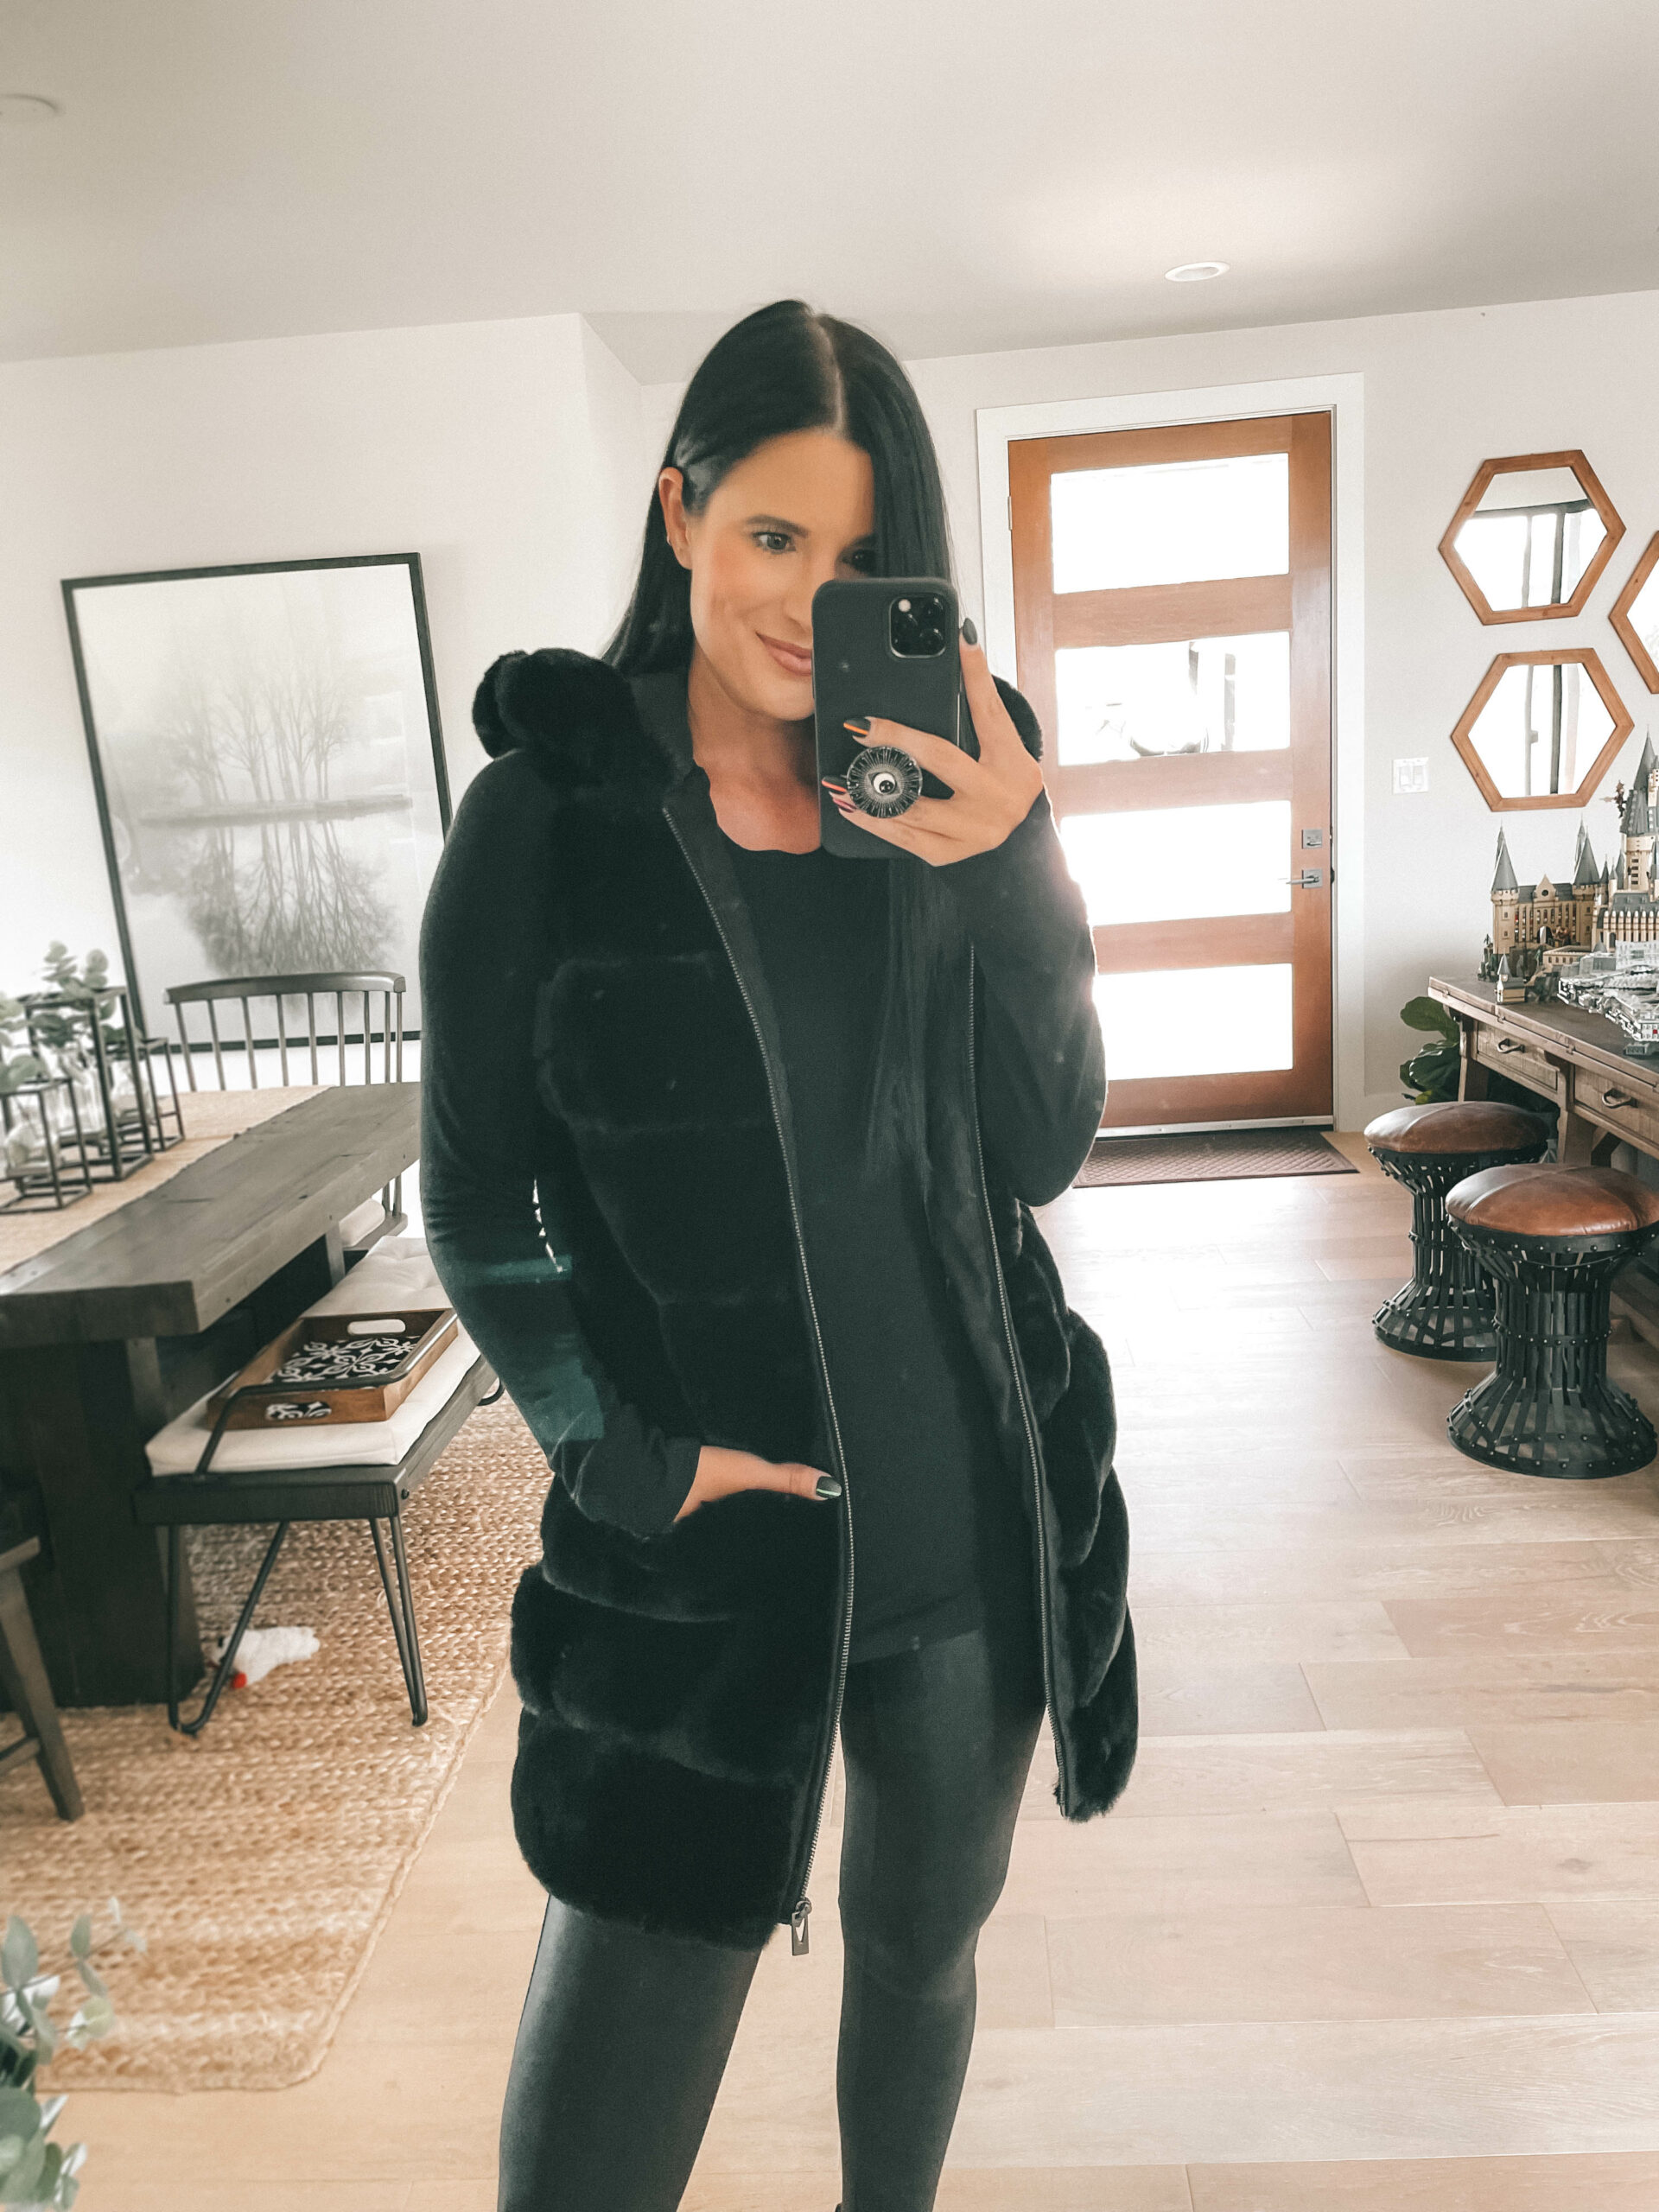 Nordstrom Anniversary Sale by popular Austin fashion blog, Dressed to Kill: image of a woman wearing a black puffer jacket, black top, and black faux leather leggings.